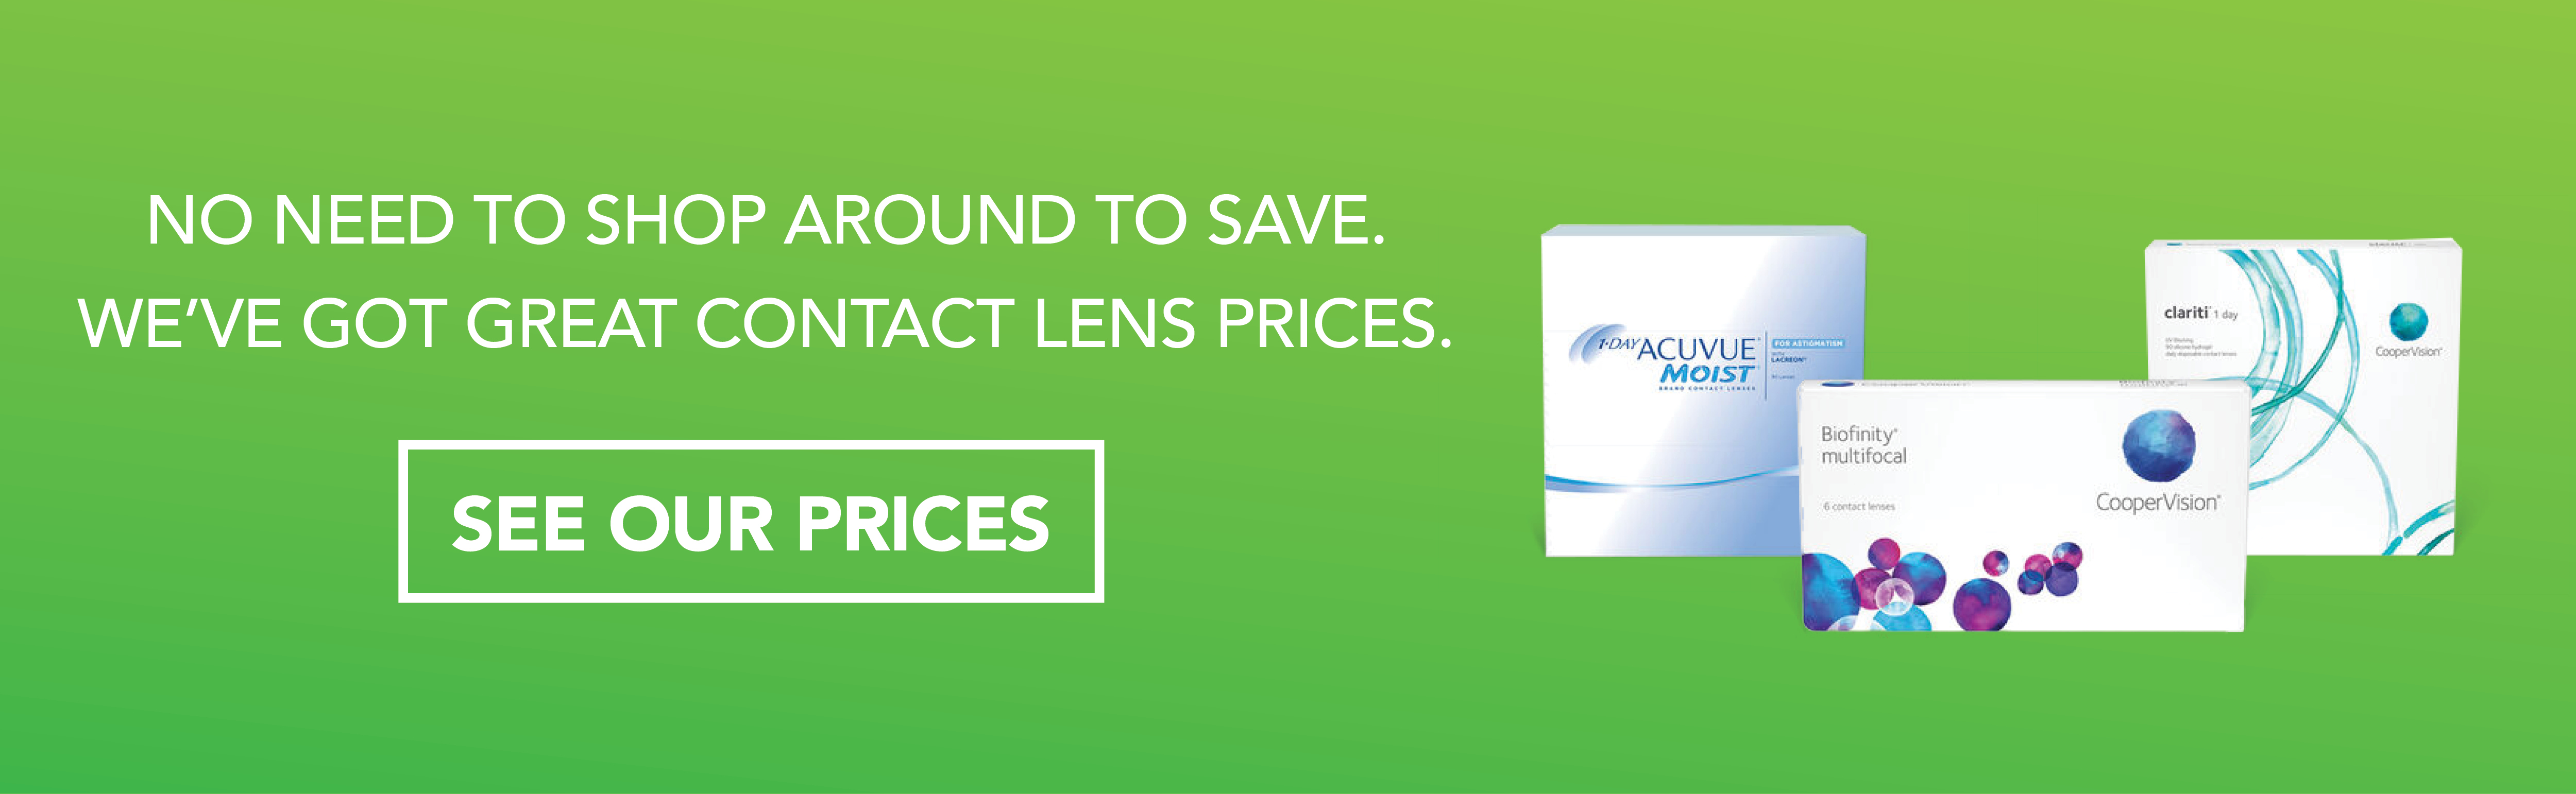 We've got great contact lens prices.